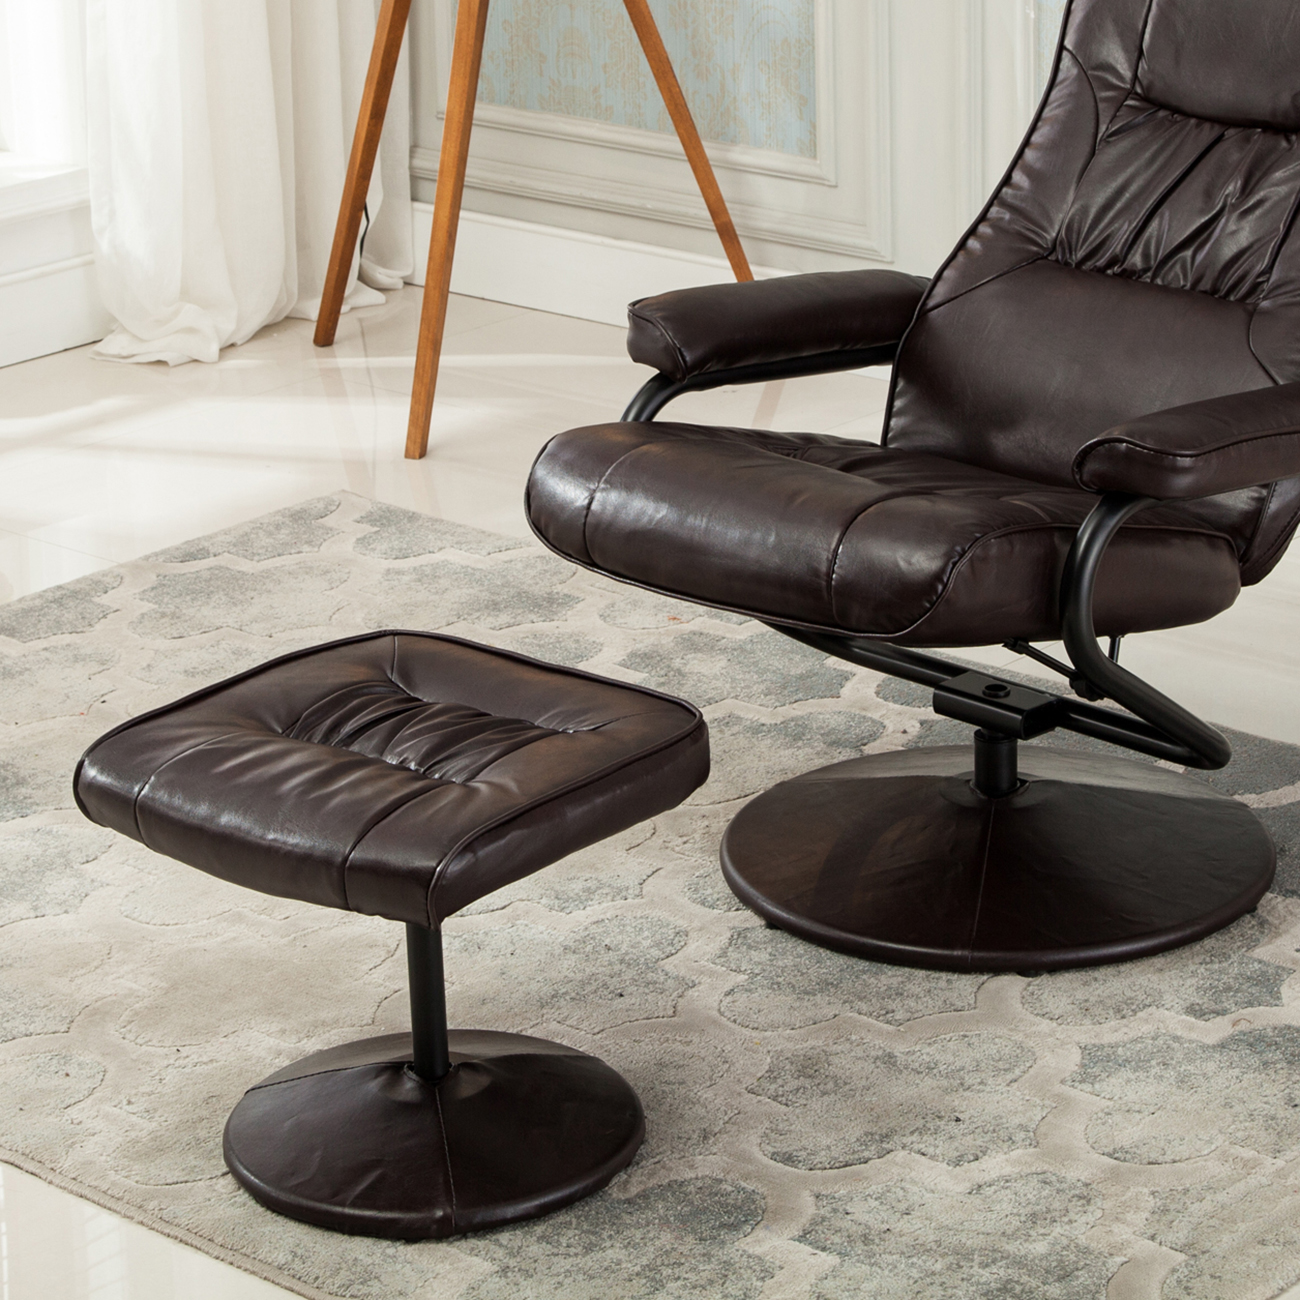 NEW Executive Faux Leather Seat Chair Recliner Swivel